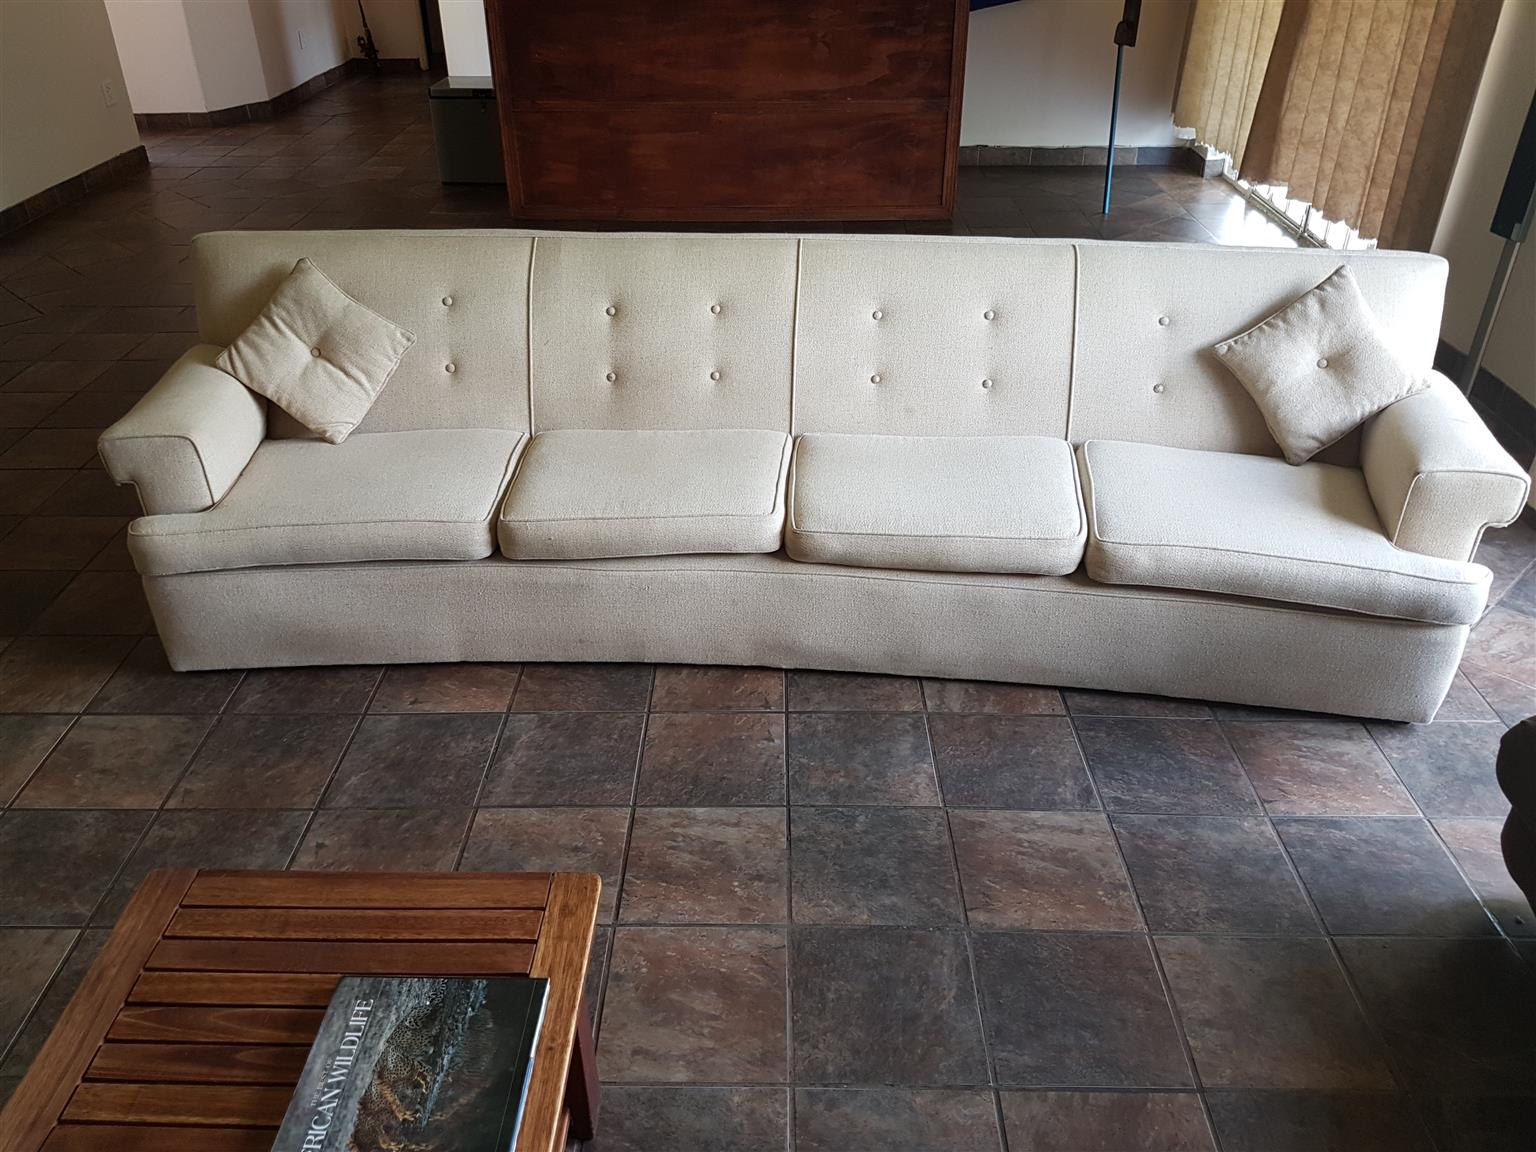 Large sturdy 4 seater couch